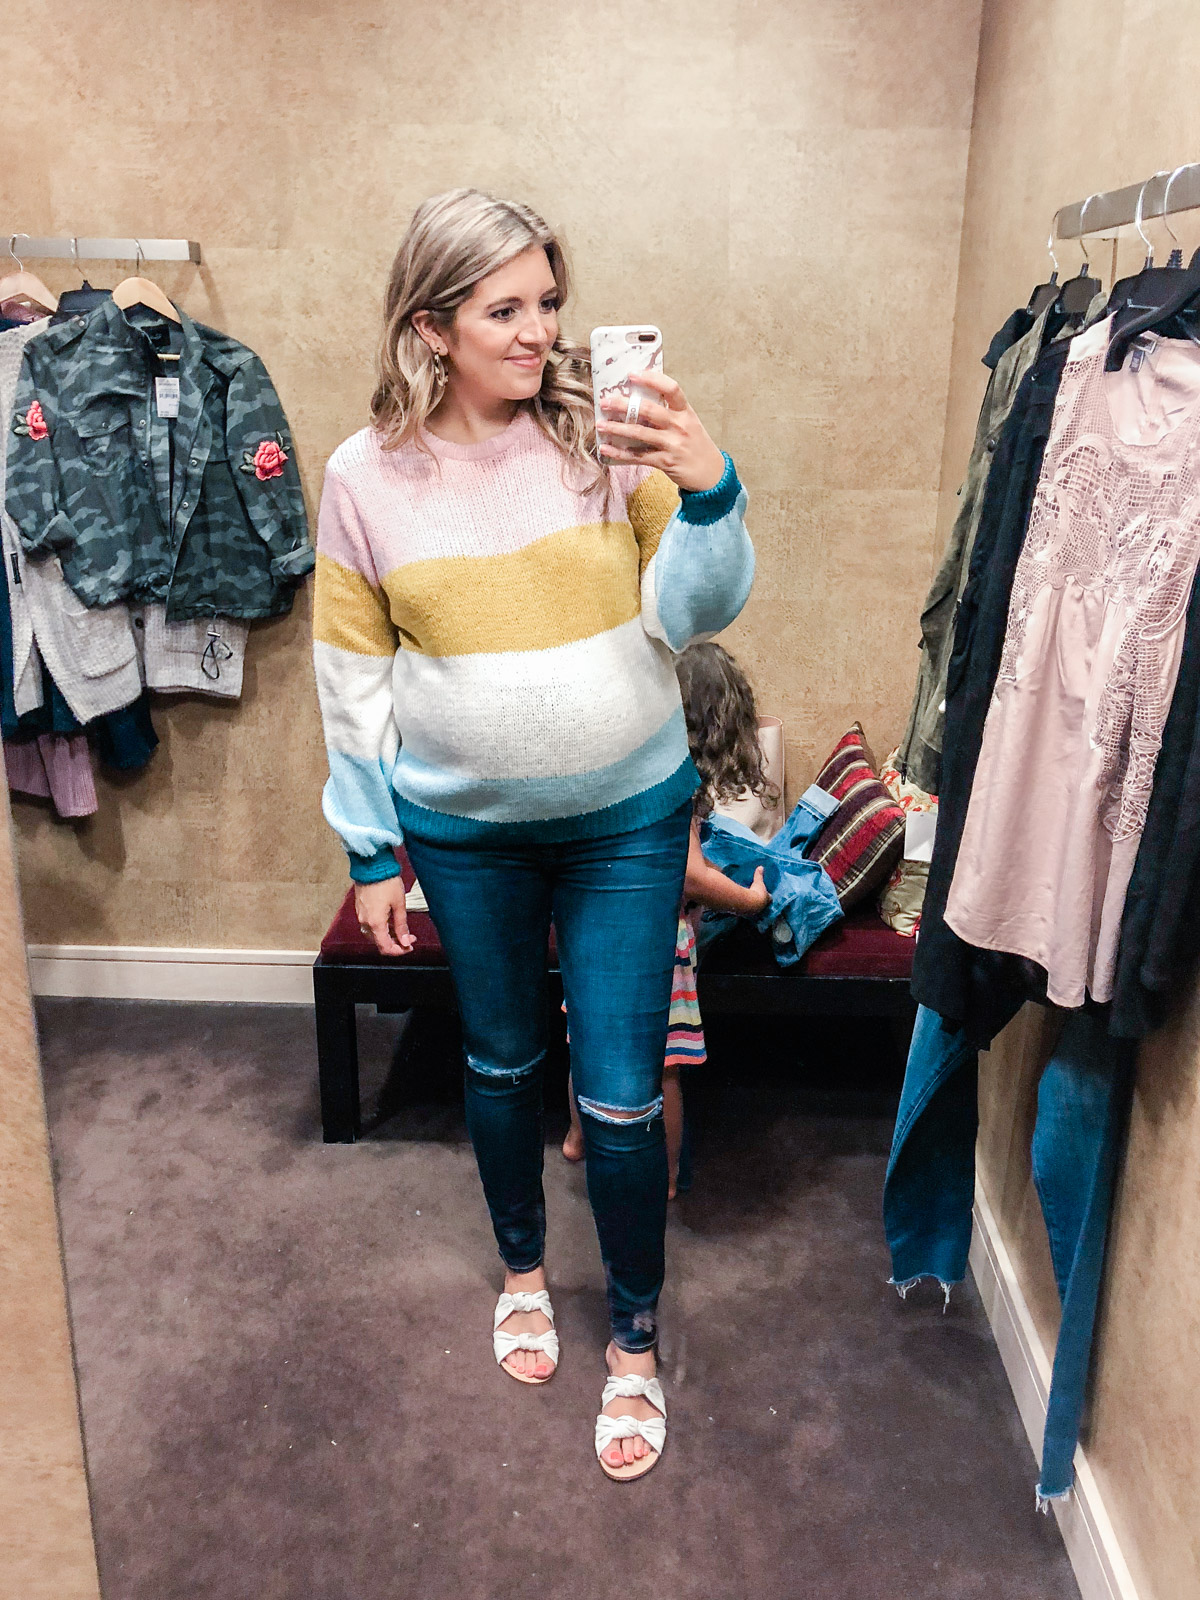 26bf4d1c842 topshop colorblock sweater - Nordstrom anniversary sale 2018 try-on  session  over 25 items